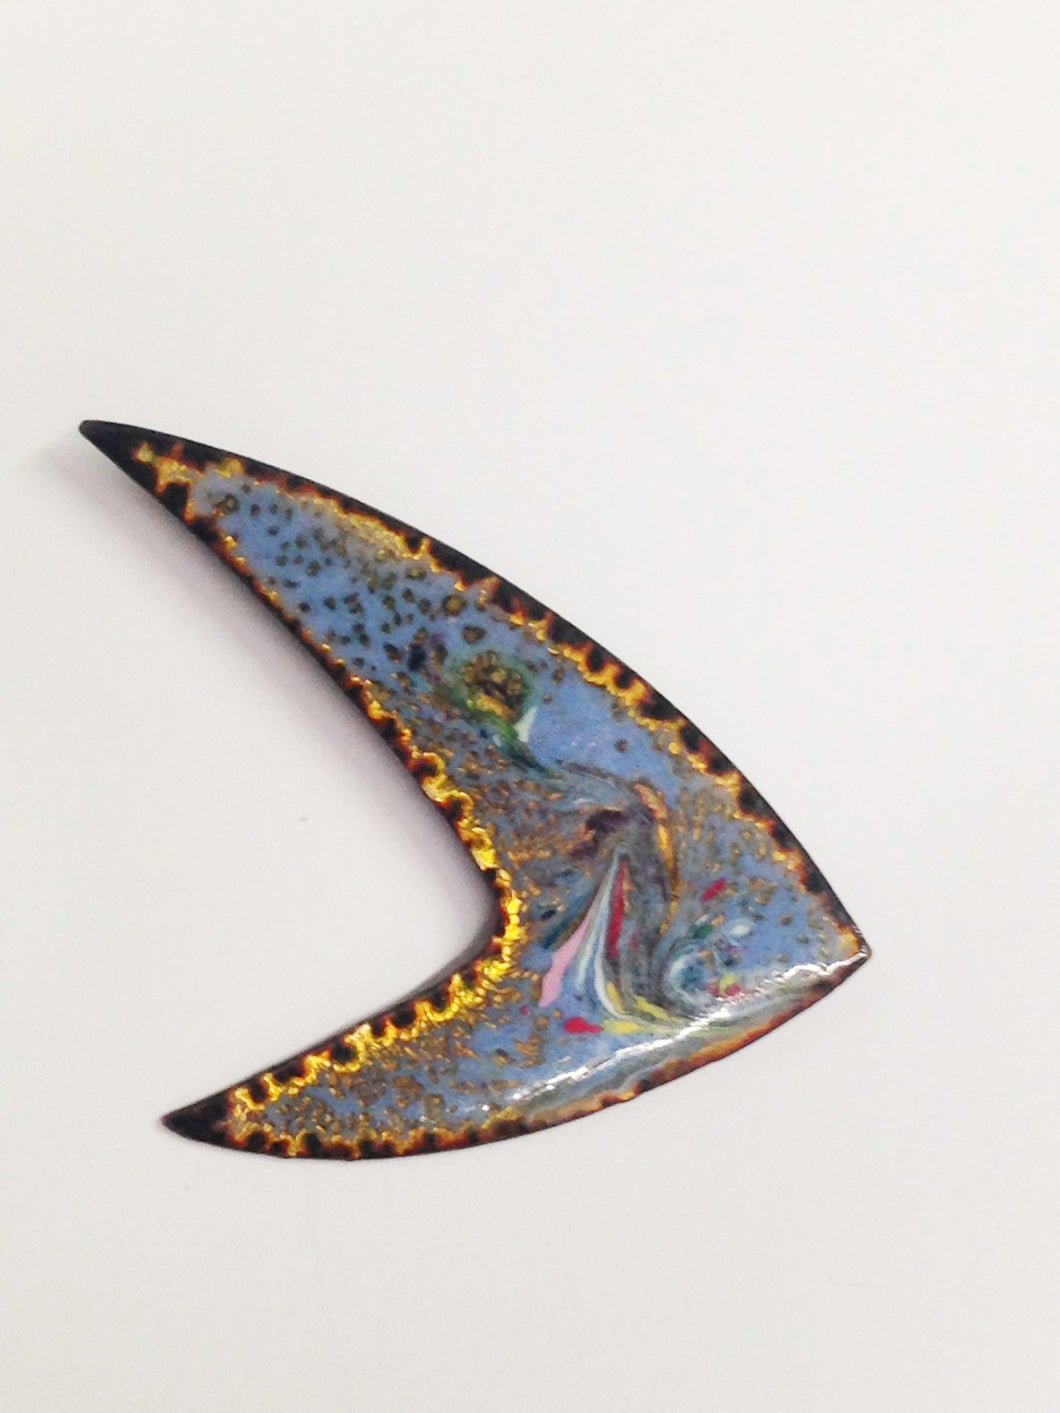 Vintage Enameled Modernist Metal Brooch Pin www.hersandhistreasures.com